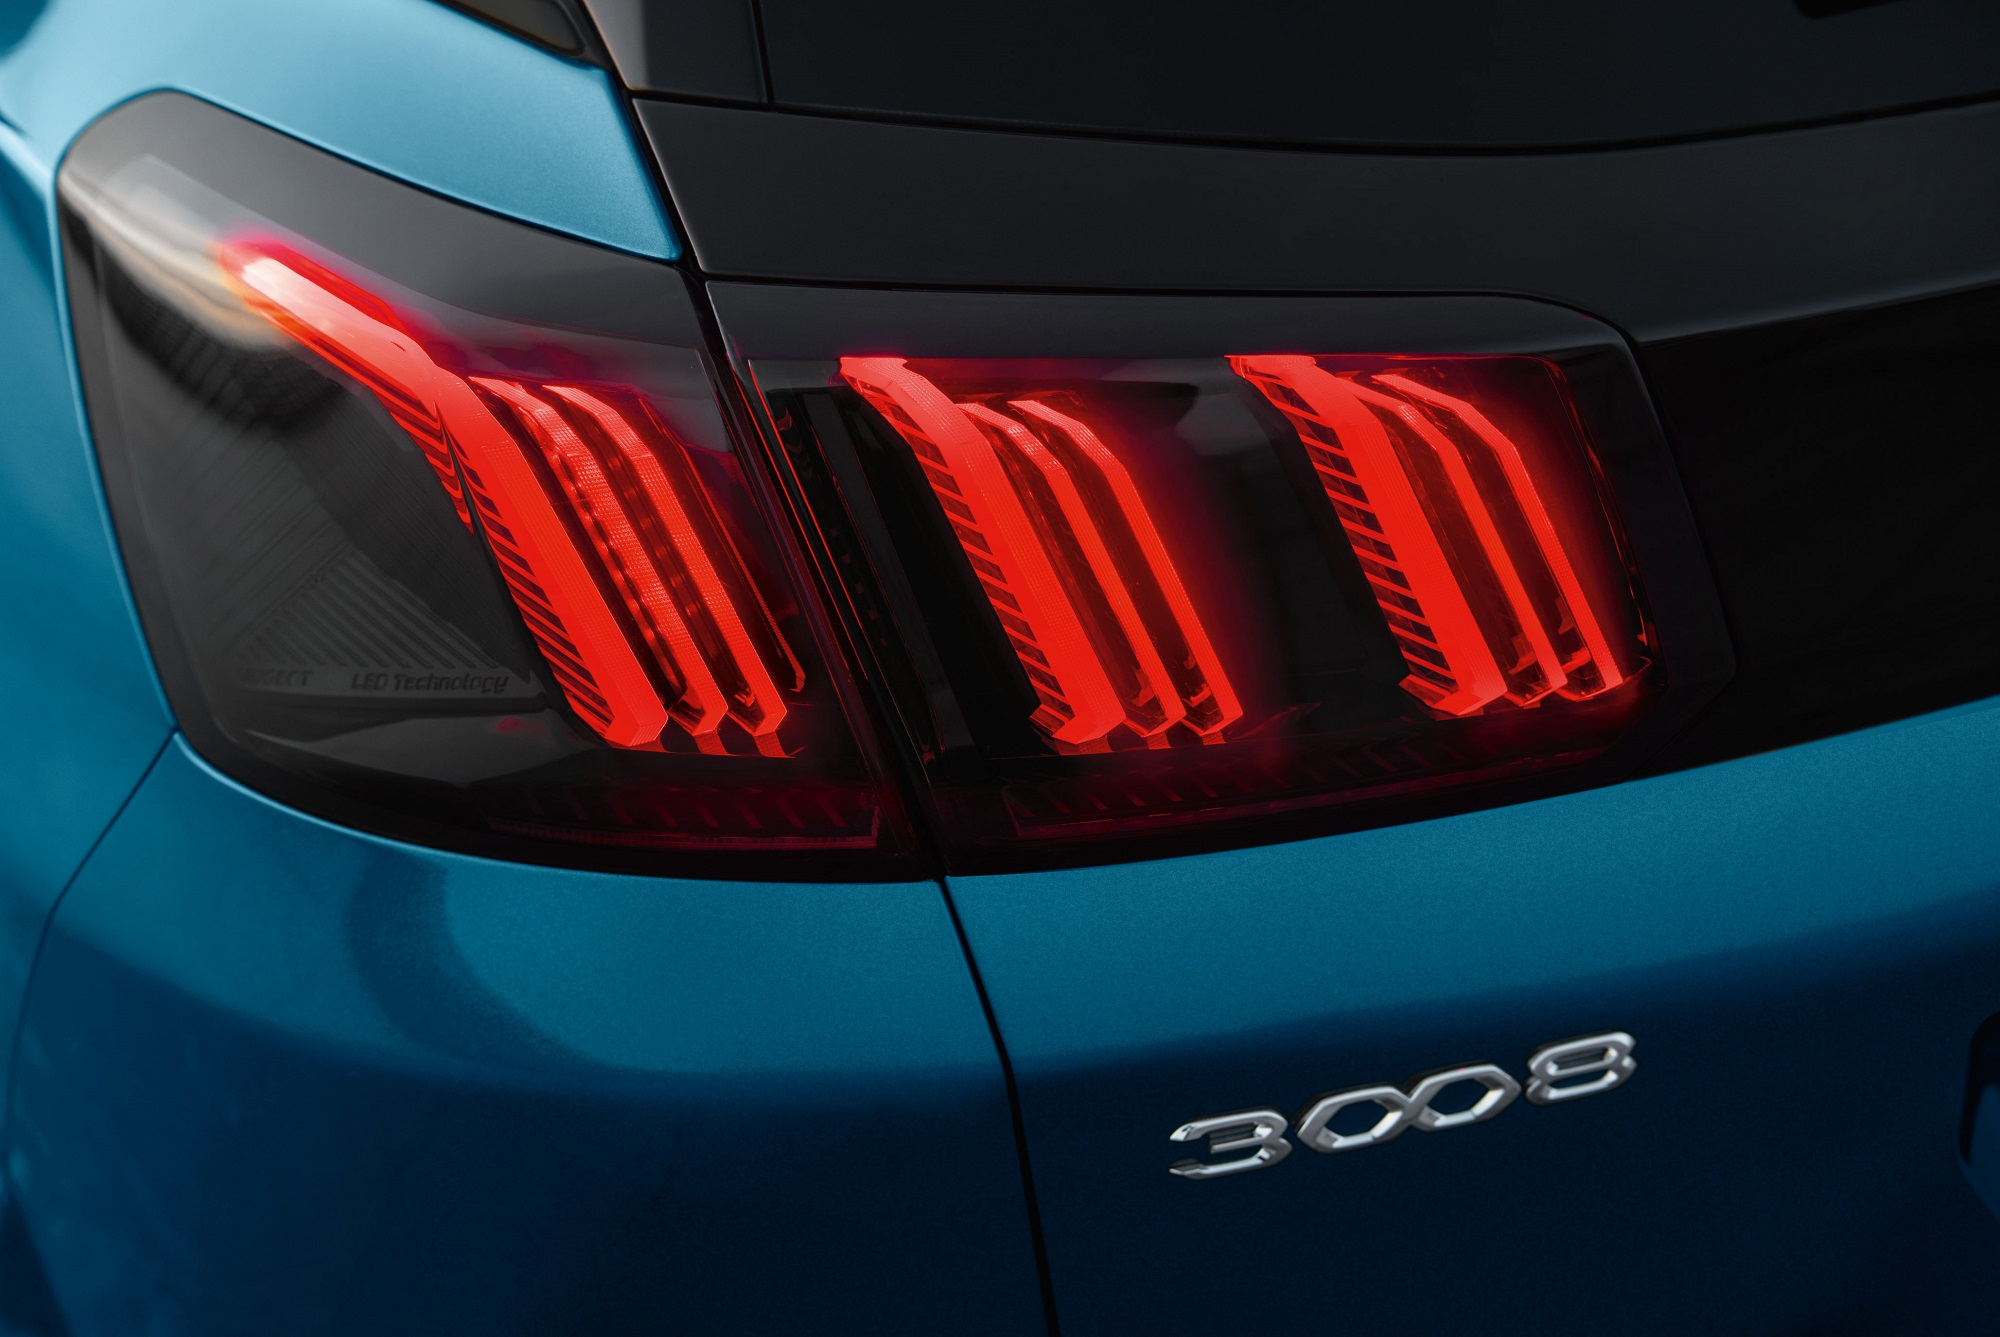 Peugeot 3008 Rear LED Lights with 3D Lion Claw Design (overseas model shown).